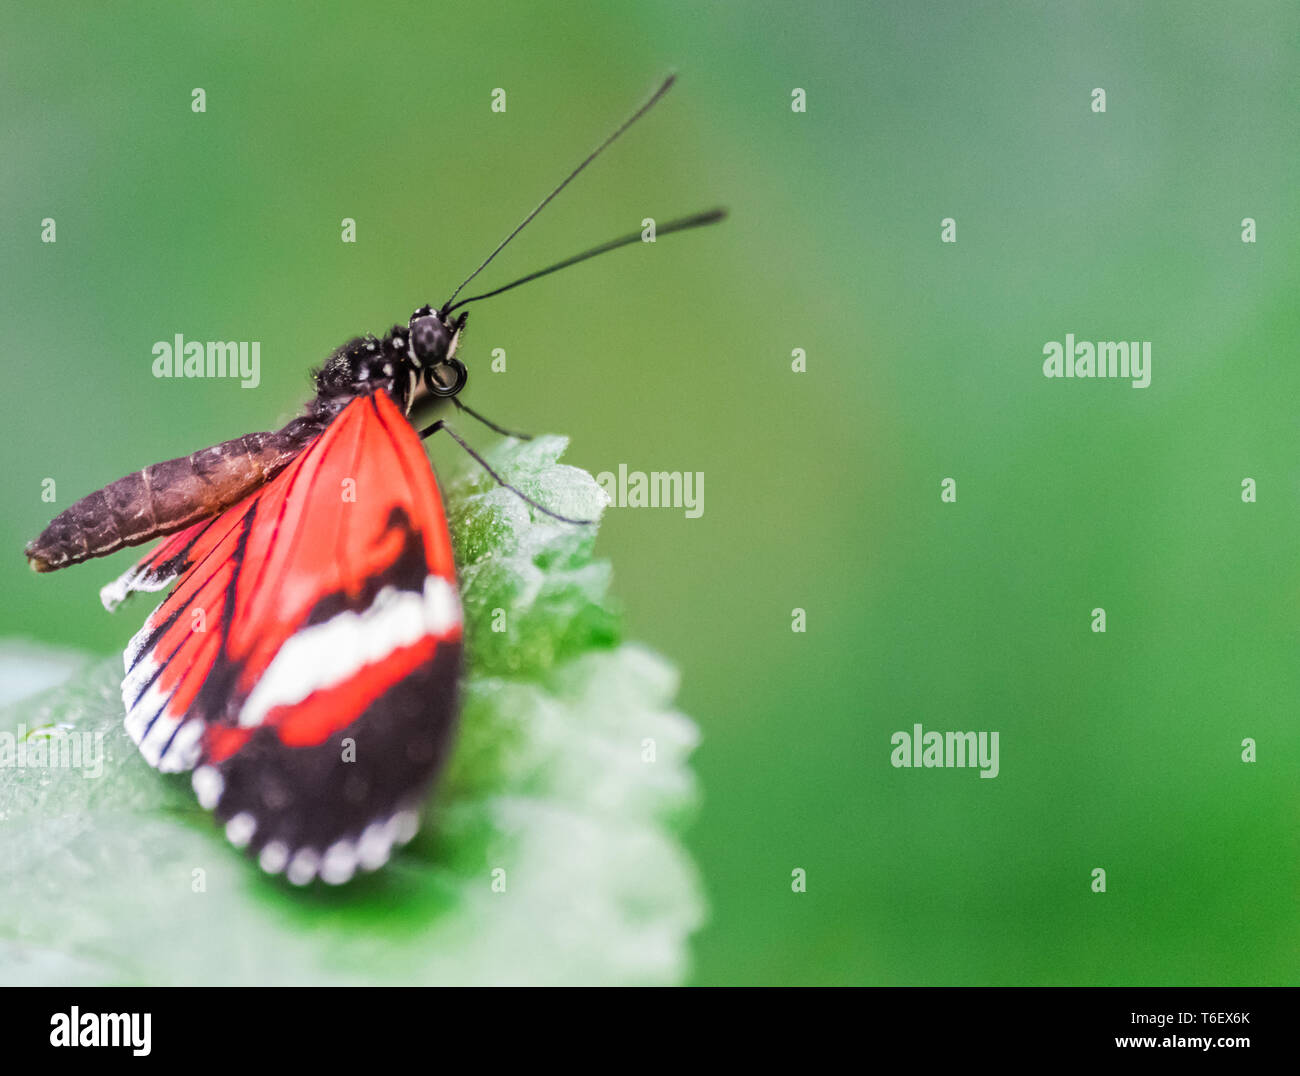 Heliconius melpomene, the postman butterfly resting on a green leaf with green vegetation background - Stock Image